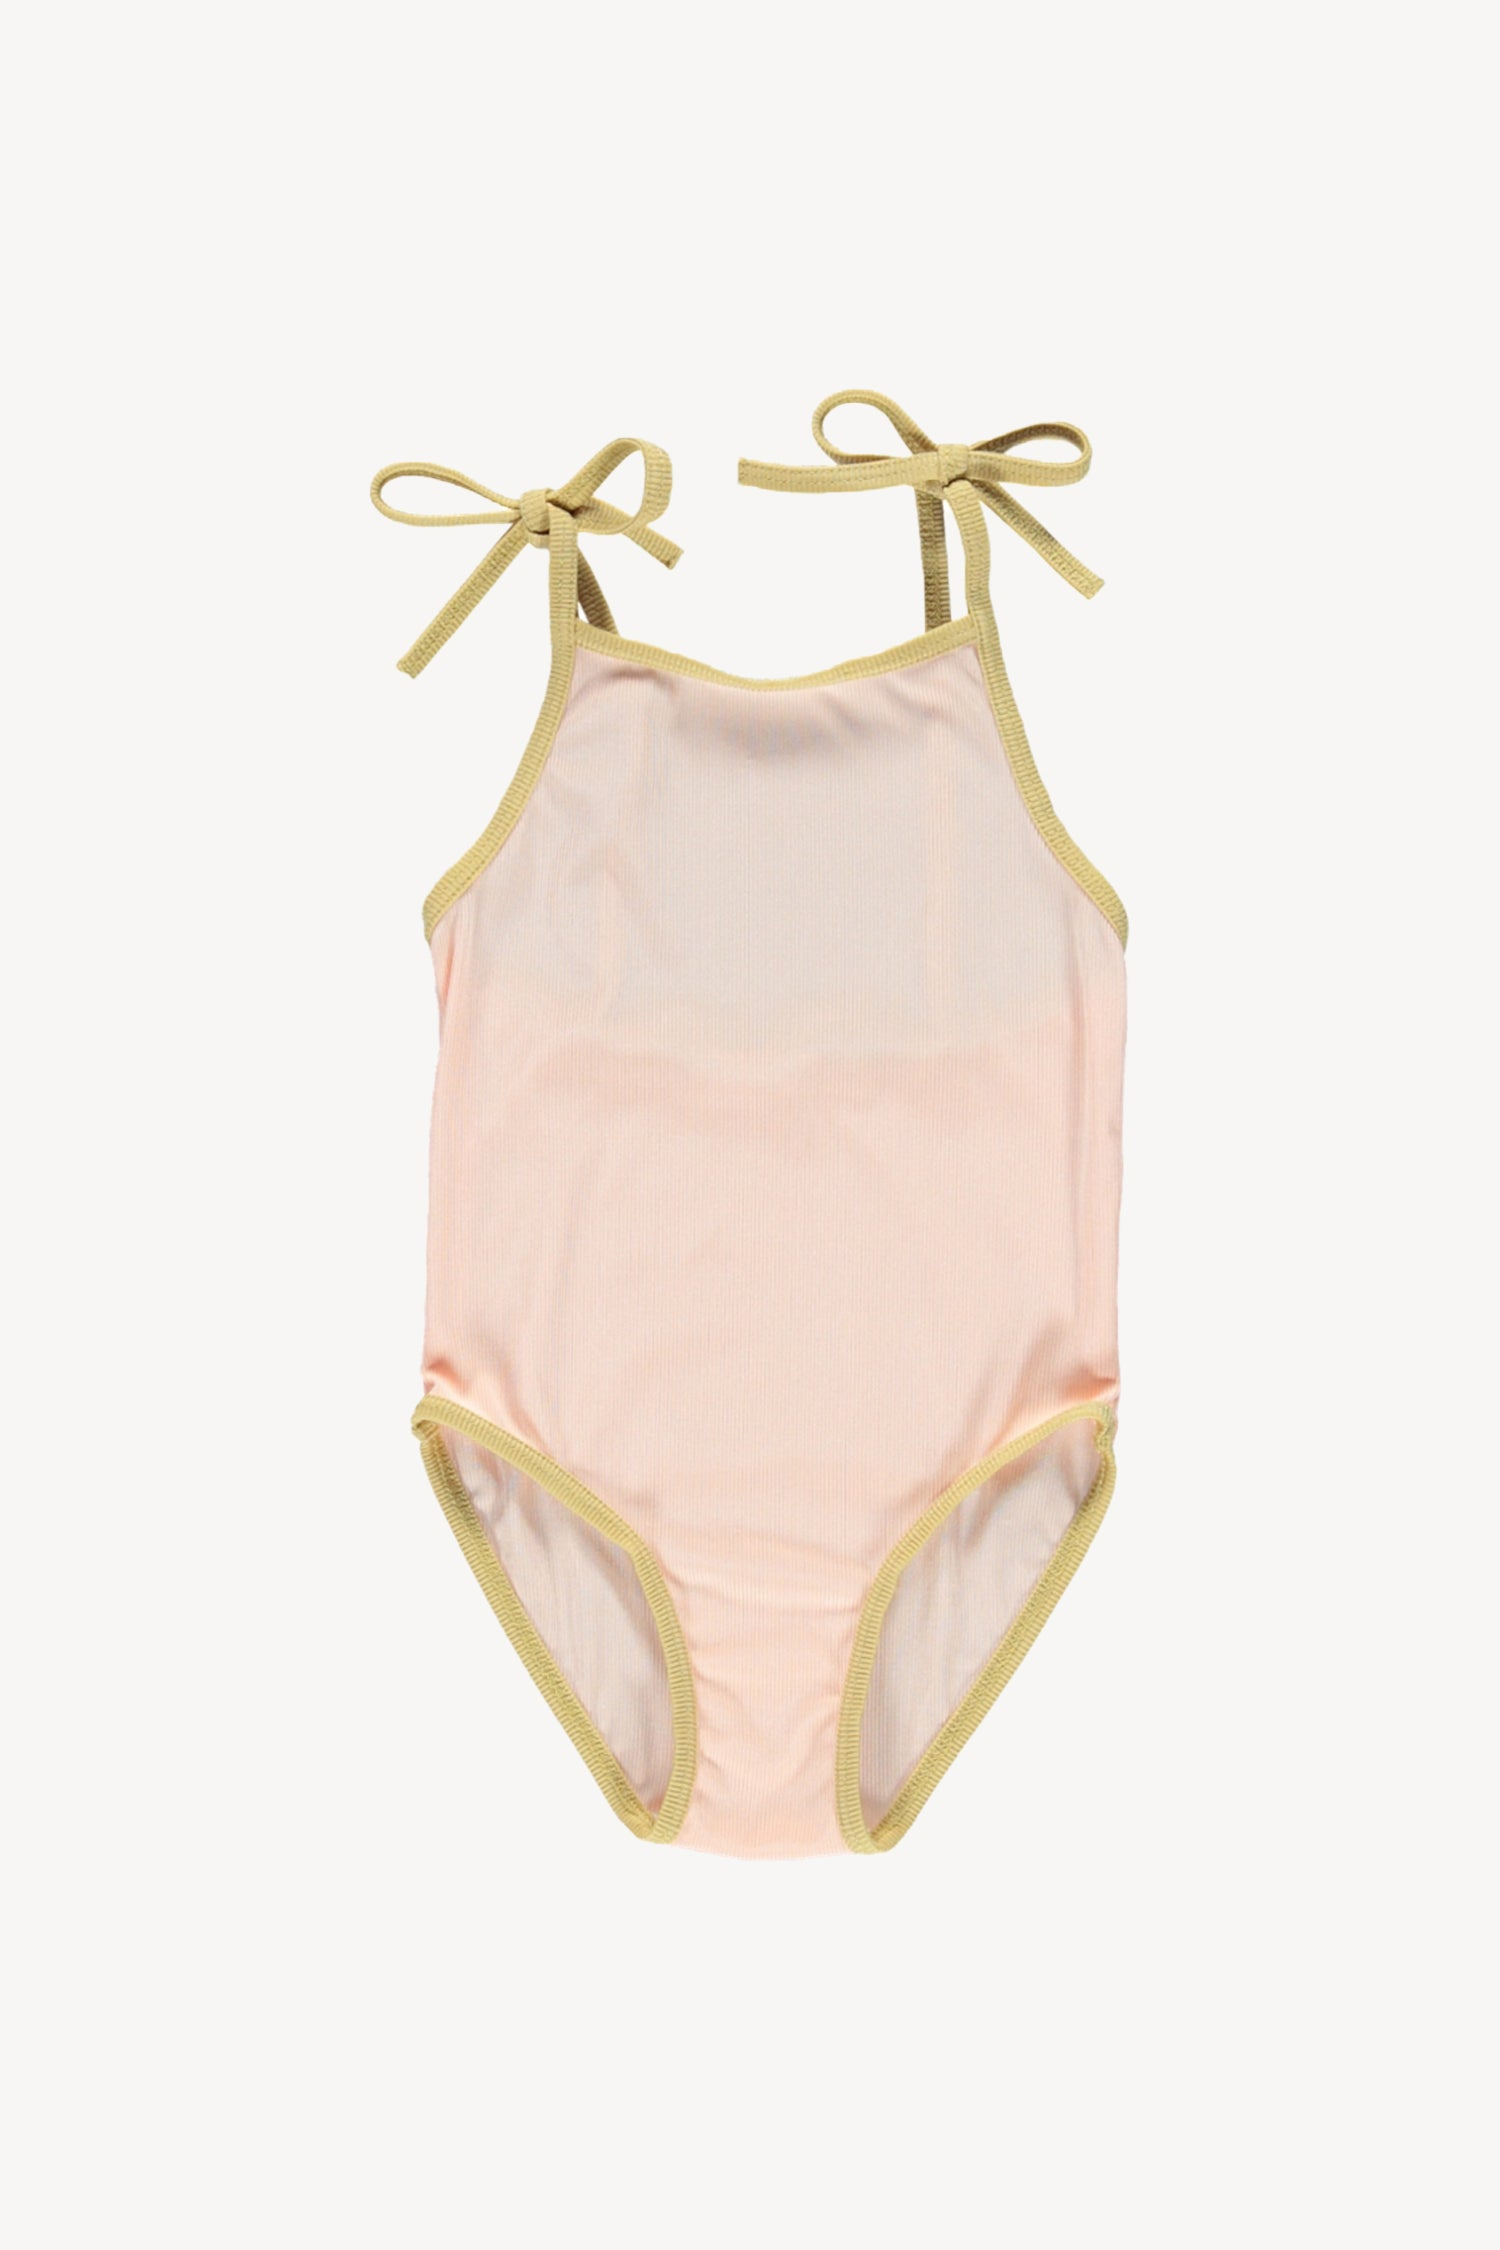 Fin and Vince - Ribbed Swimsuit (Sherbert/Mustard) - Last 6/12